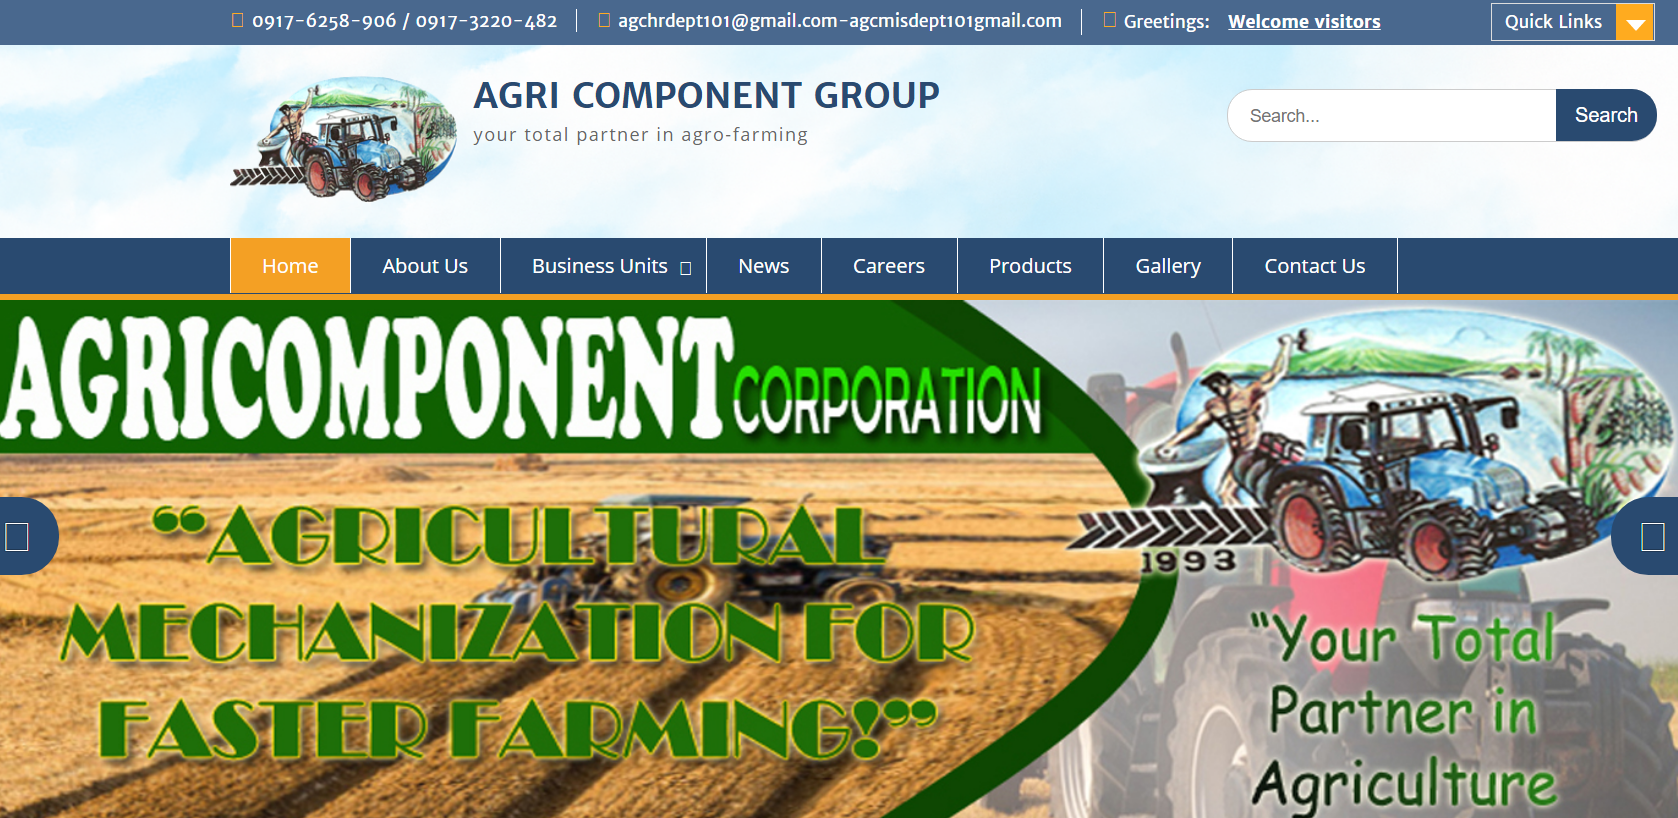 Agricomponent Corporation